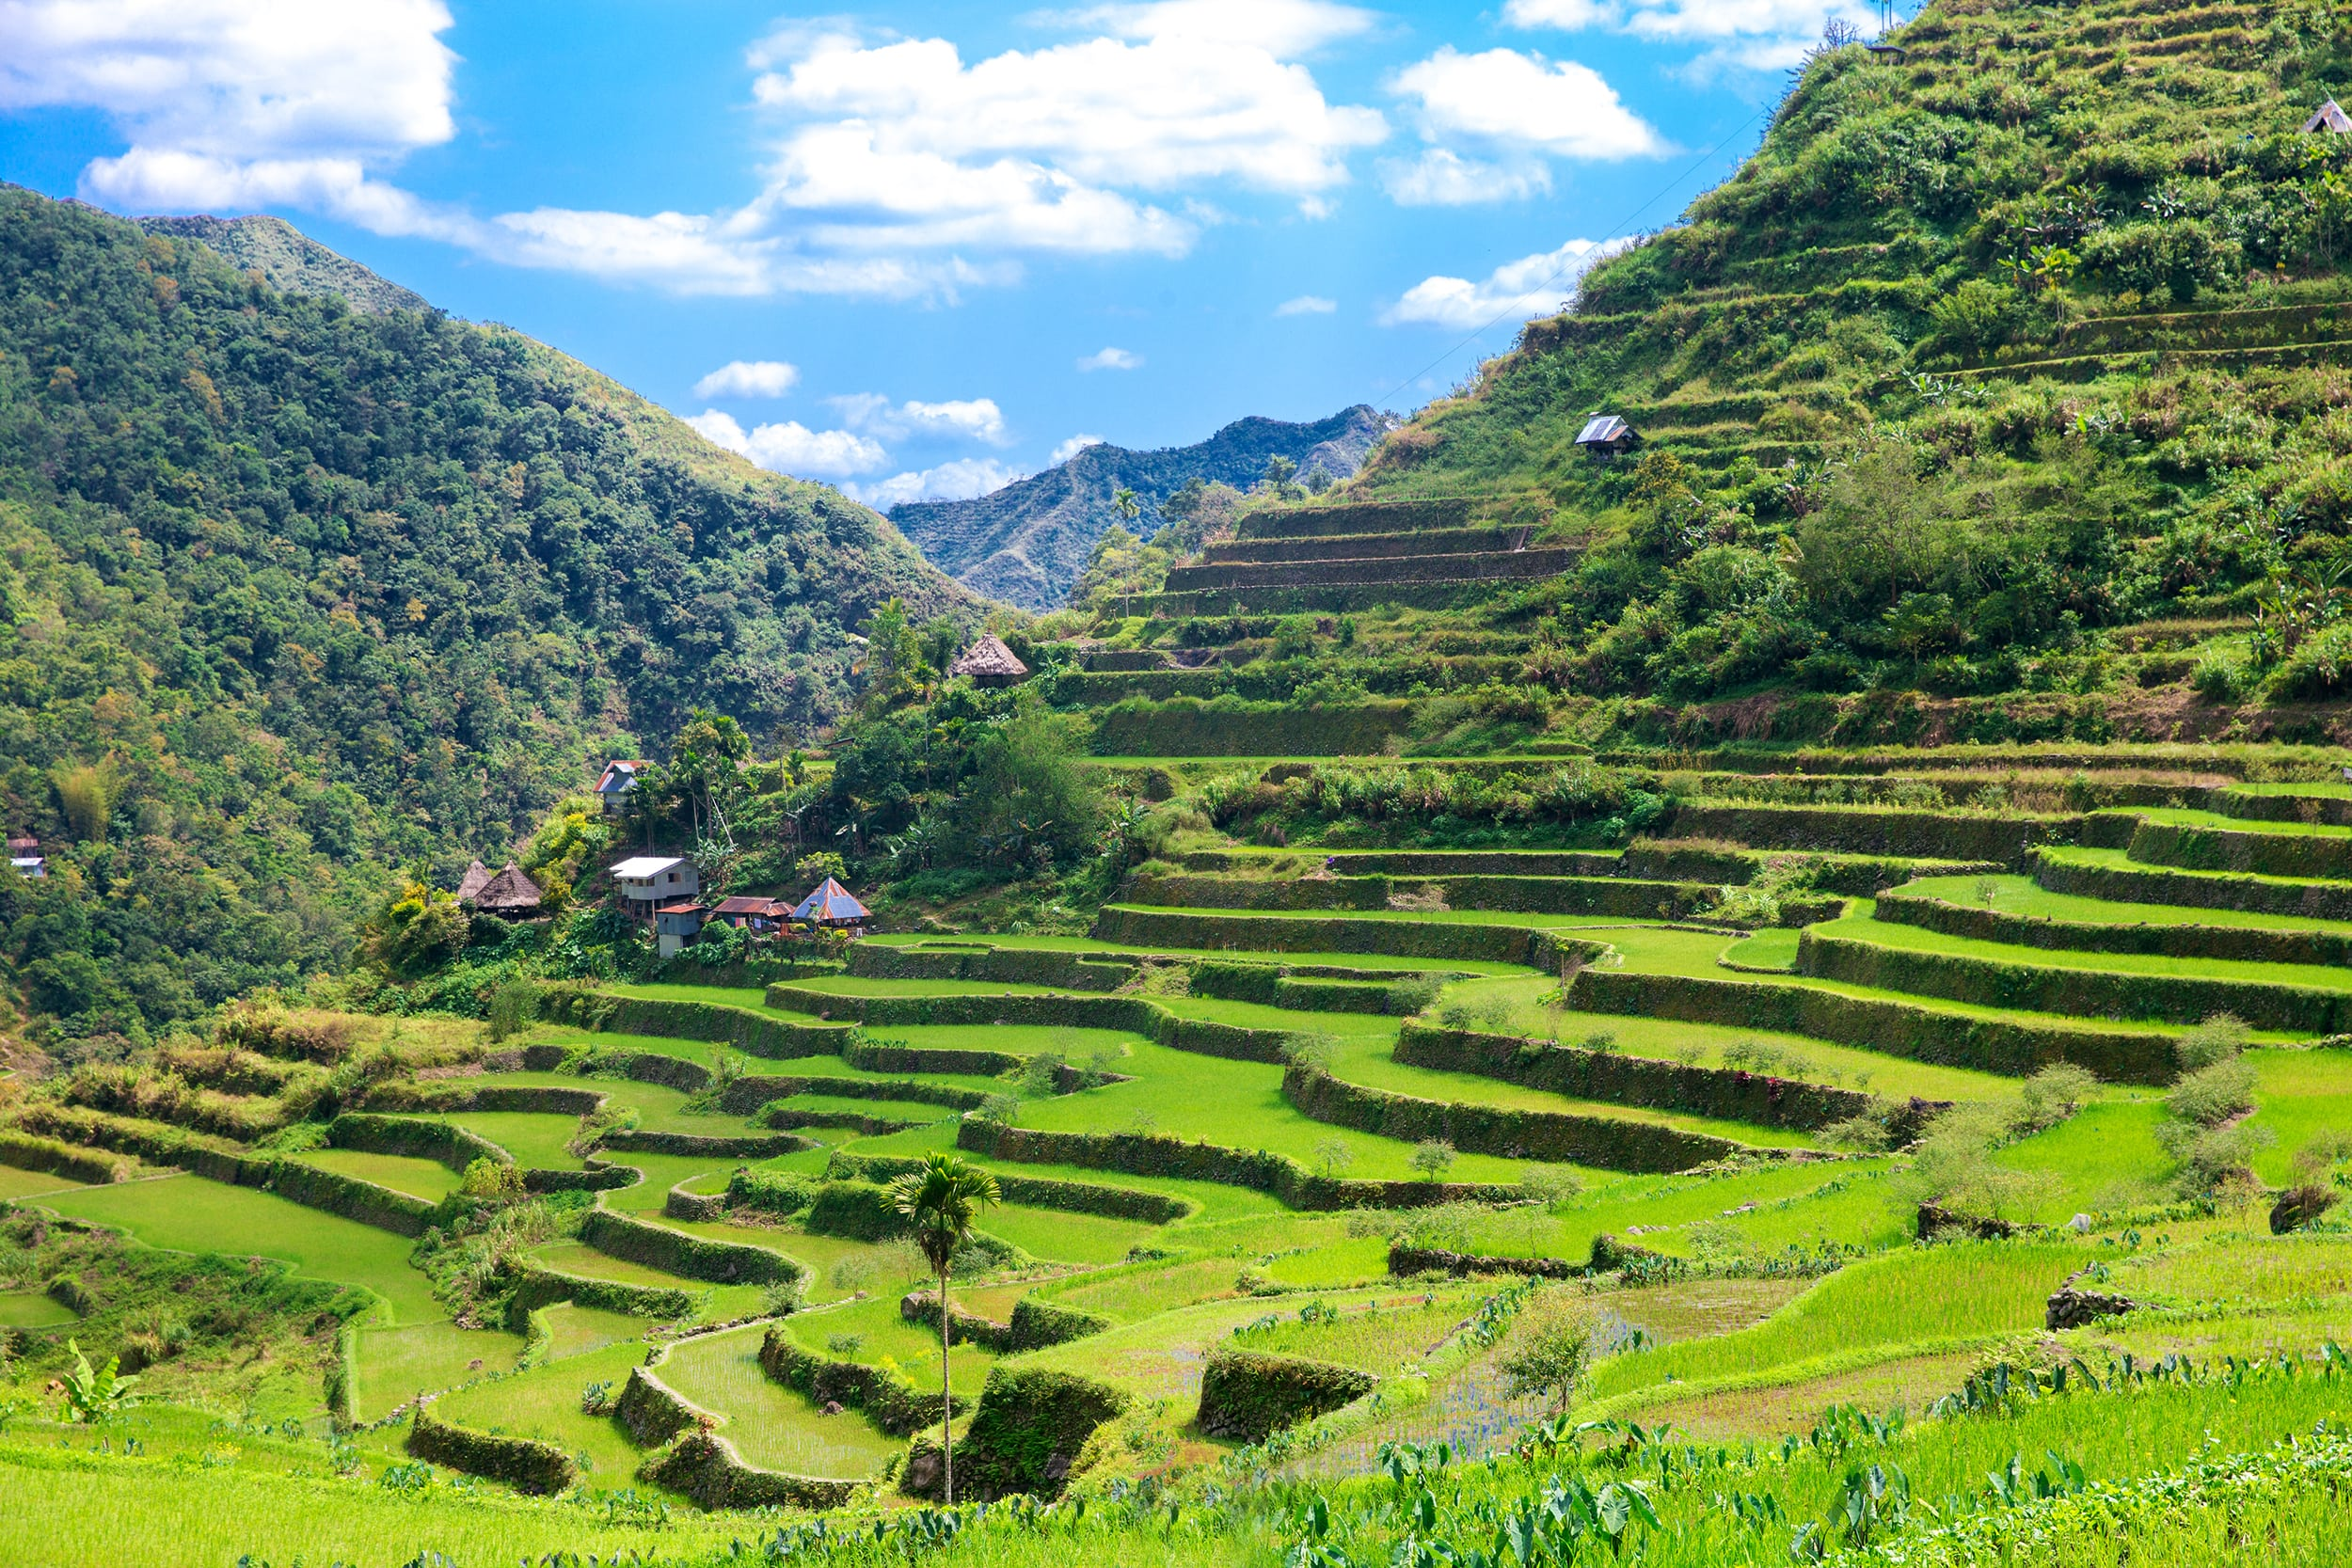 Batad Rice Terraces in Banaue